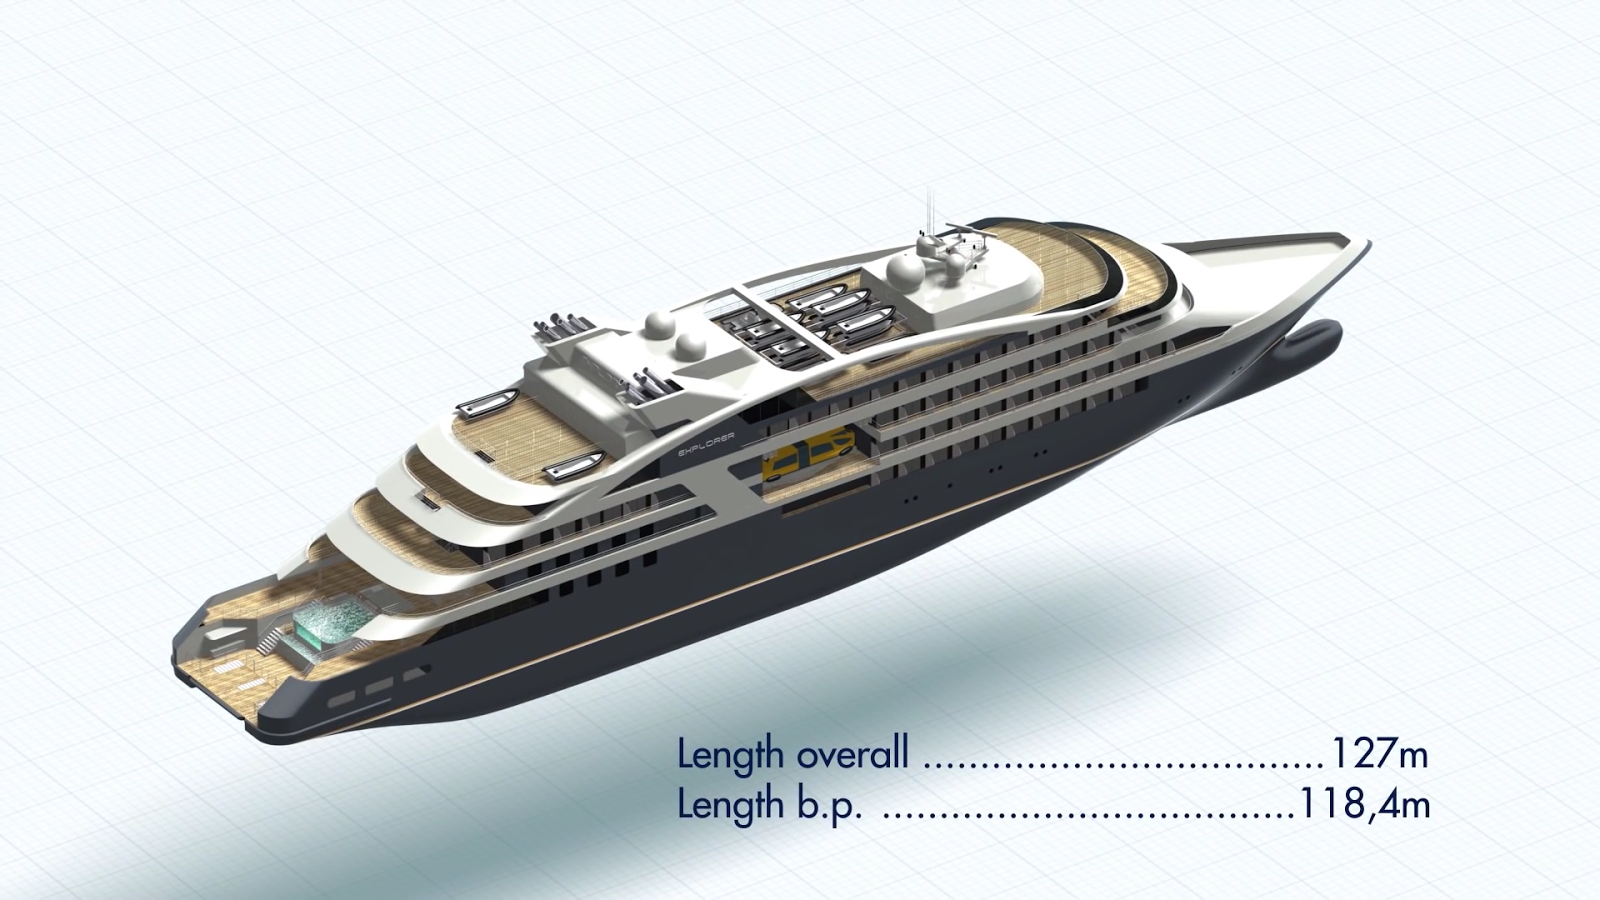 WATCH: Ponant's New Yachts